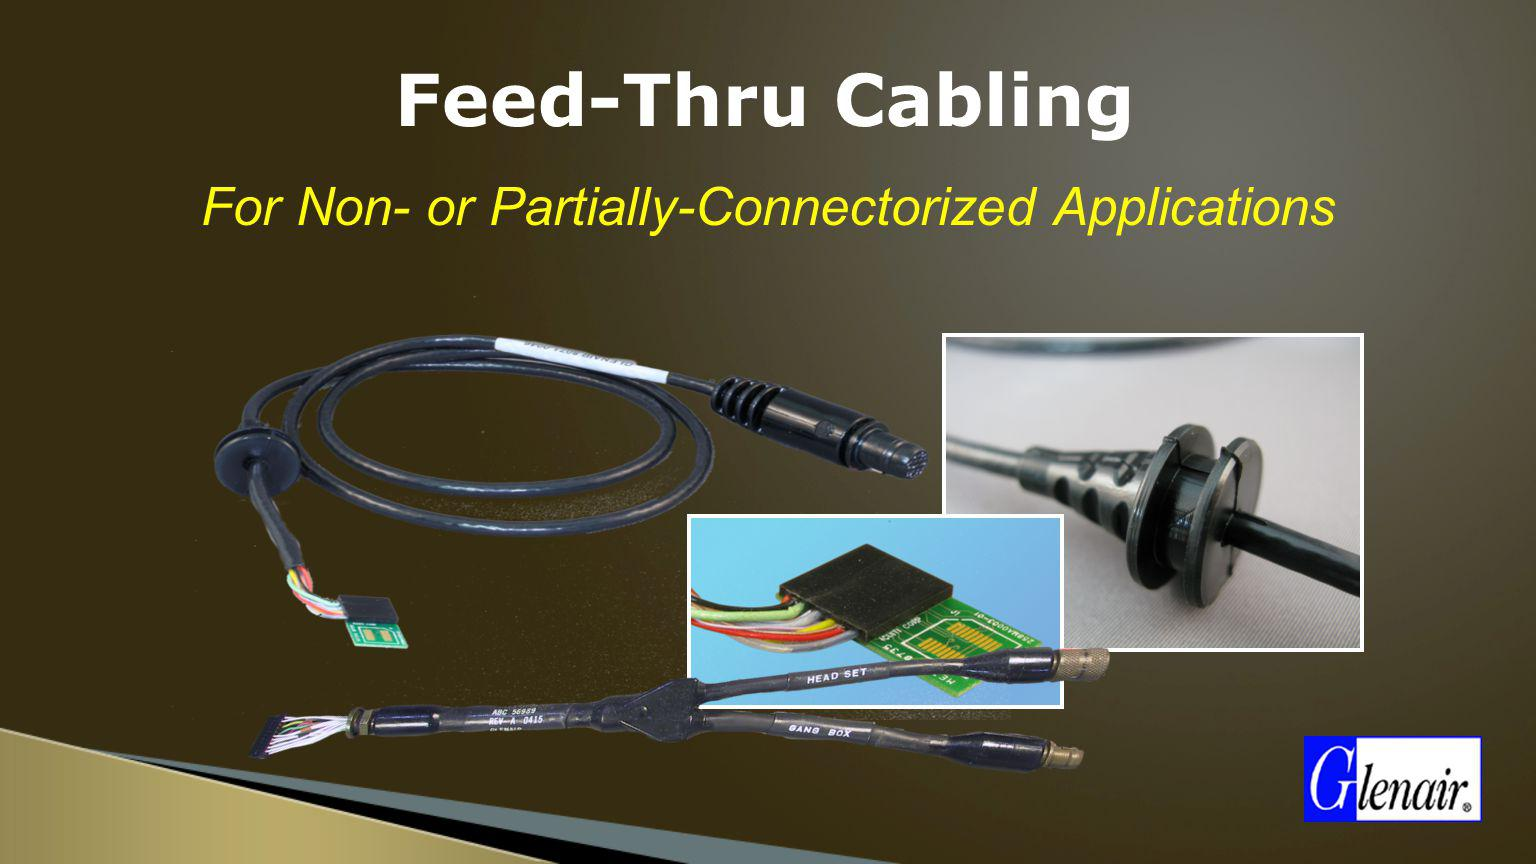 For Non- or Partially-Connectorized Applications